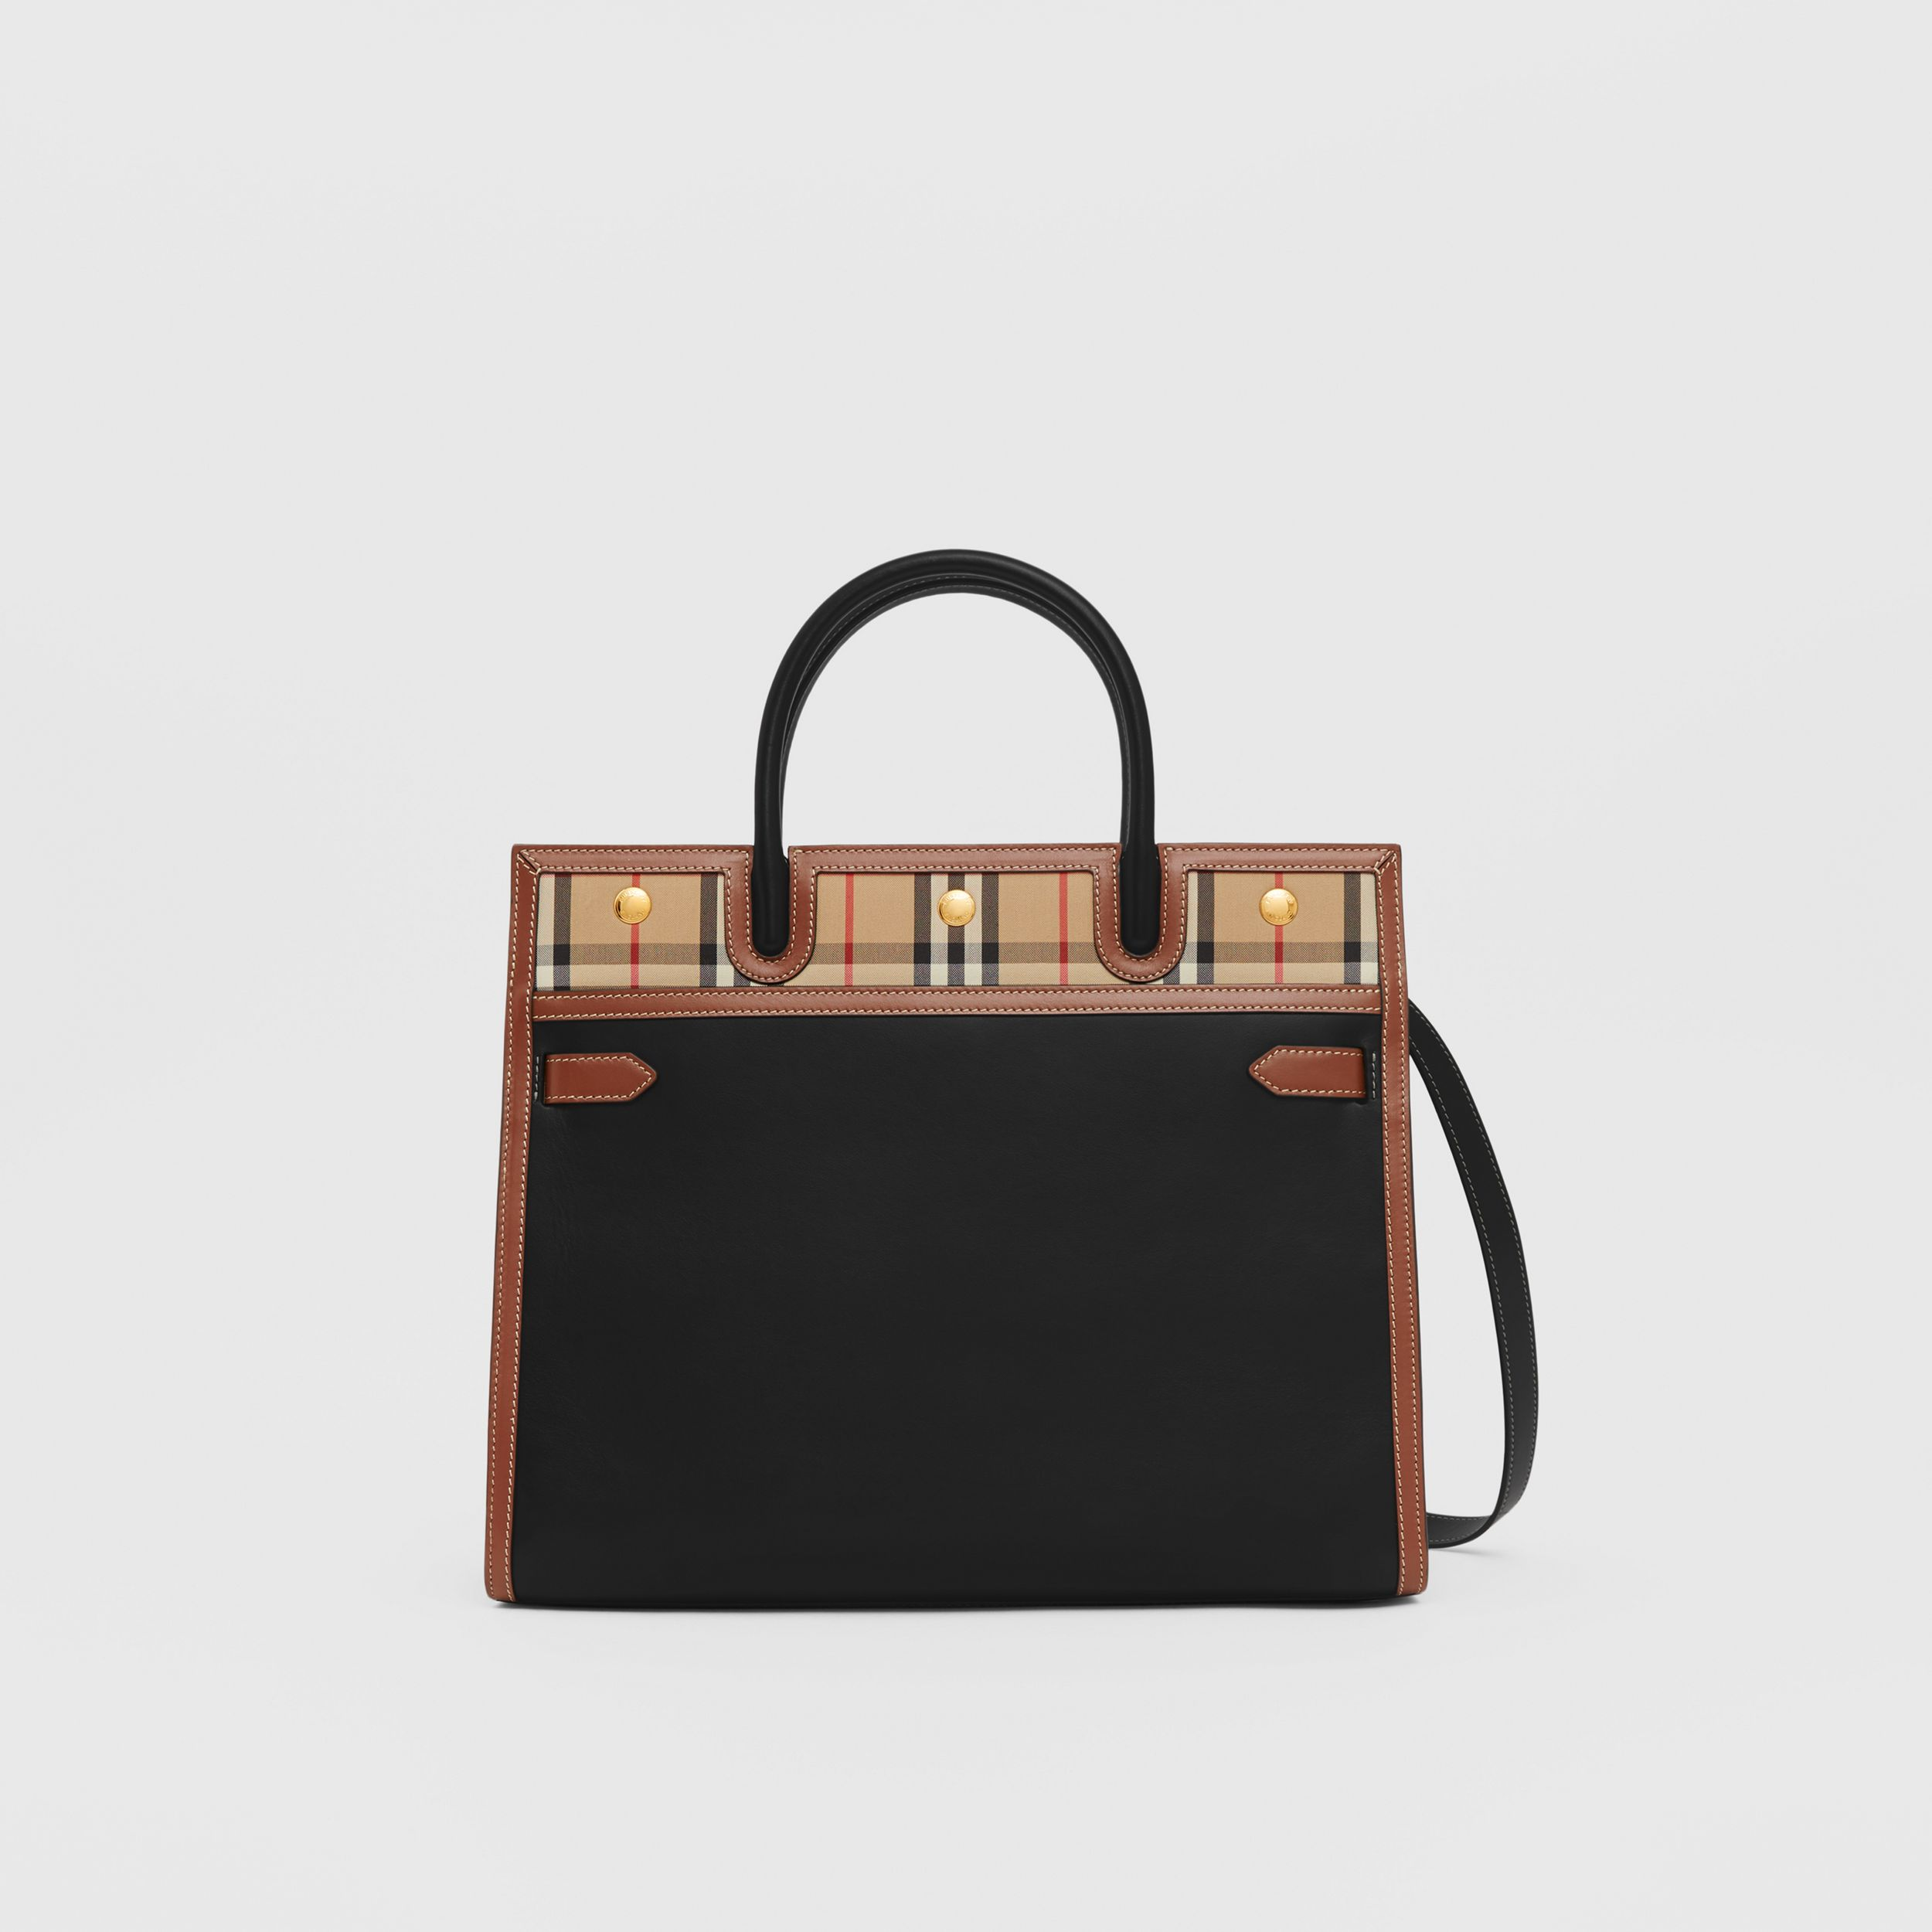 Small Leather and Vintage Check Two-handle Title Bag in Black - Women | Burberry - 1